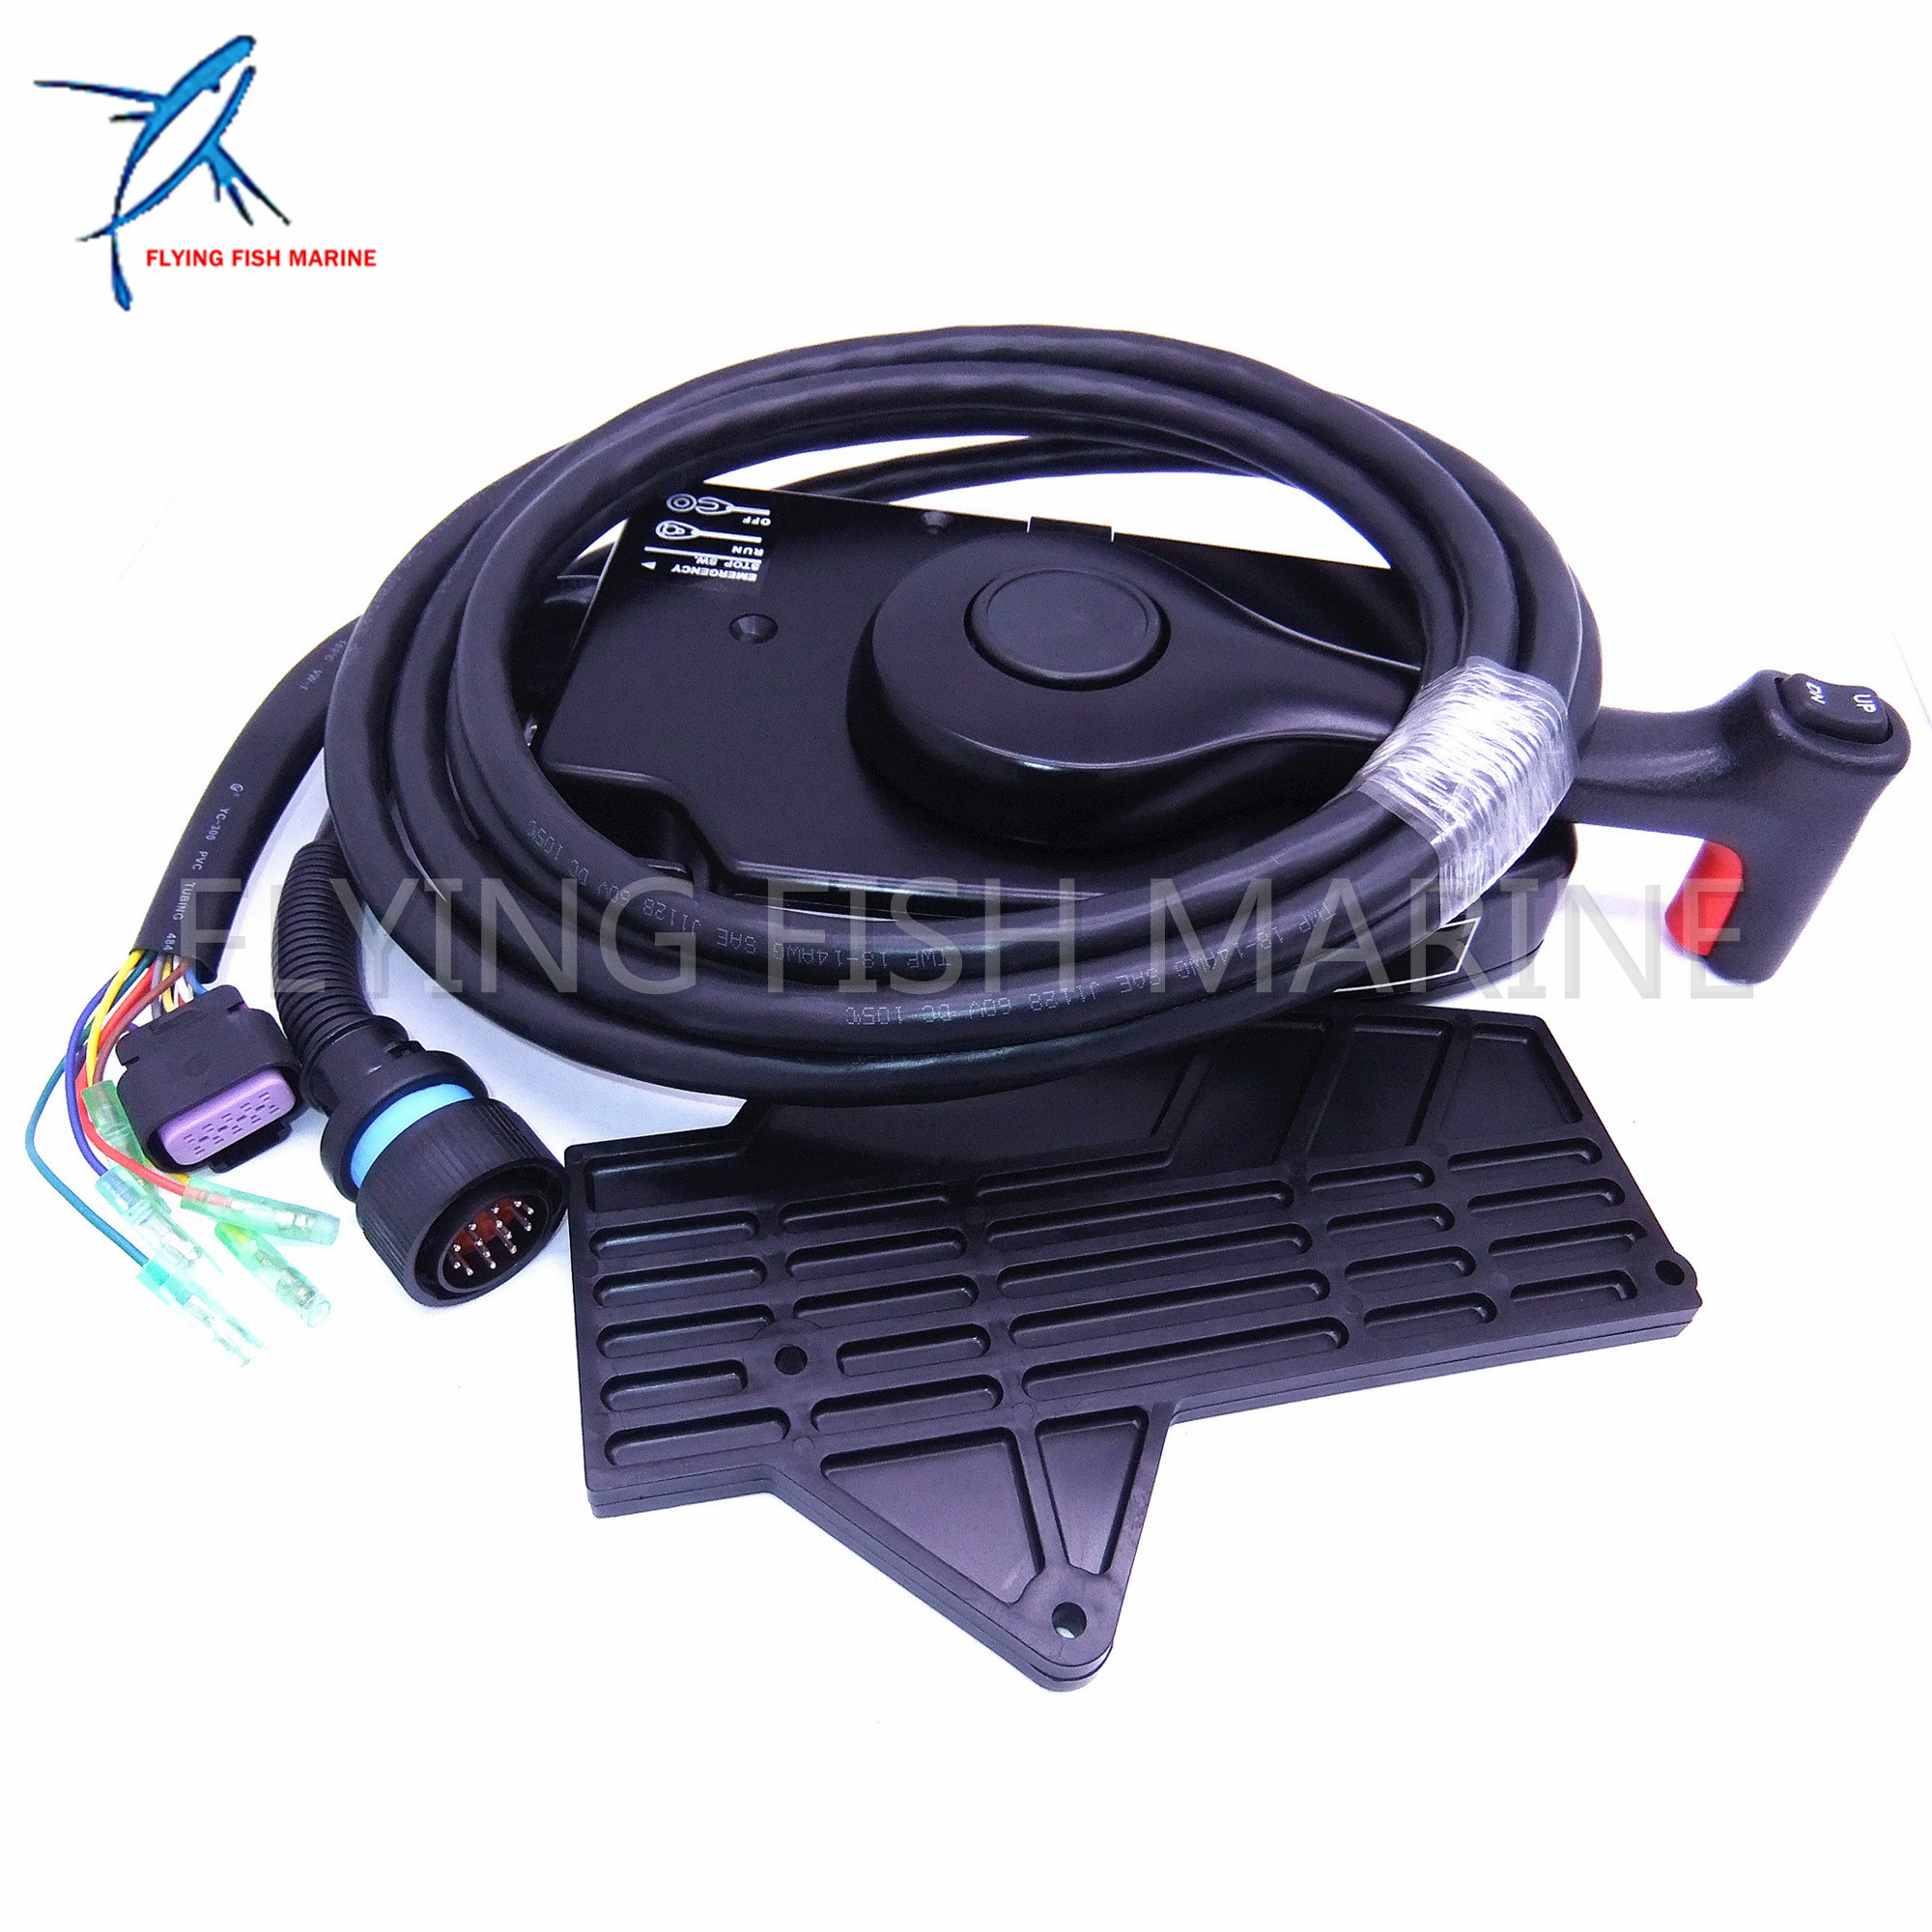 us $170 09 10% off 881170a13 boat motor side mount remote control box with 14 pin for mercury outboard engine 14 pin in boat engine from automobiles \u0026Side Mount Control Box Including Mercury Outboard Remote Control Parts #5